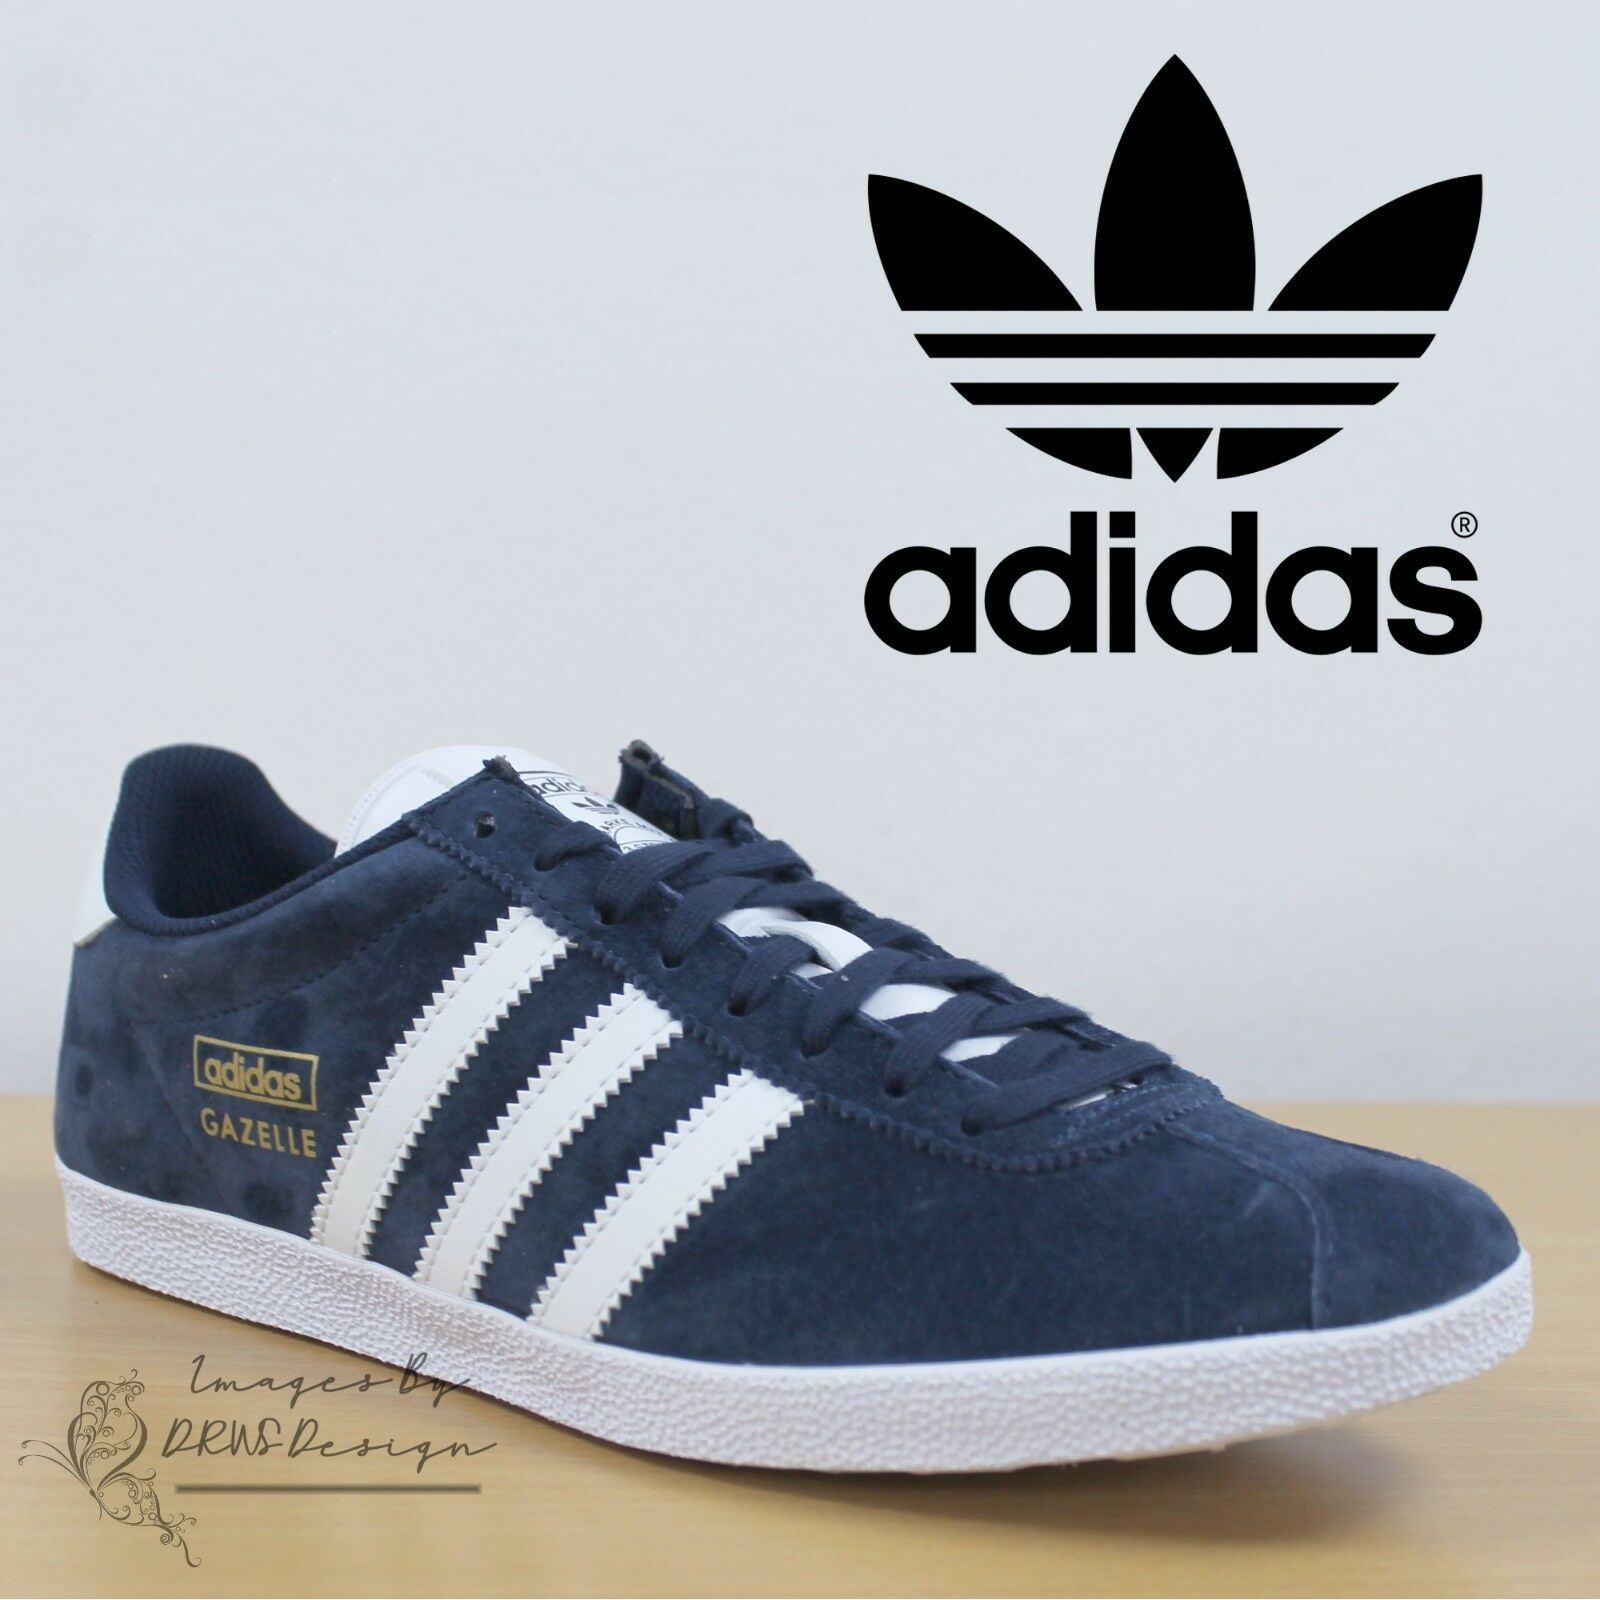 Adidas Originals Gazelle OG Men's Navy Trefoil Trainers Casual Retro Sneakers